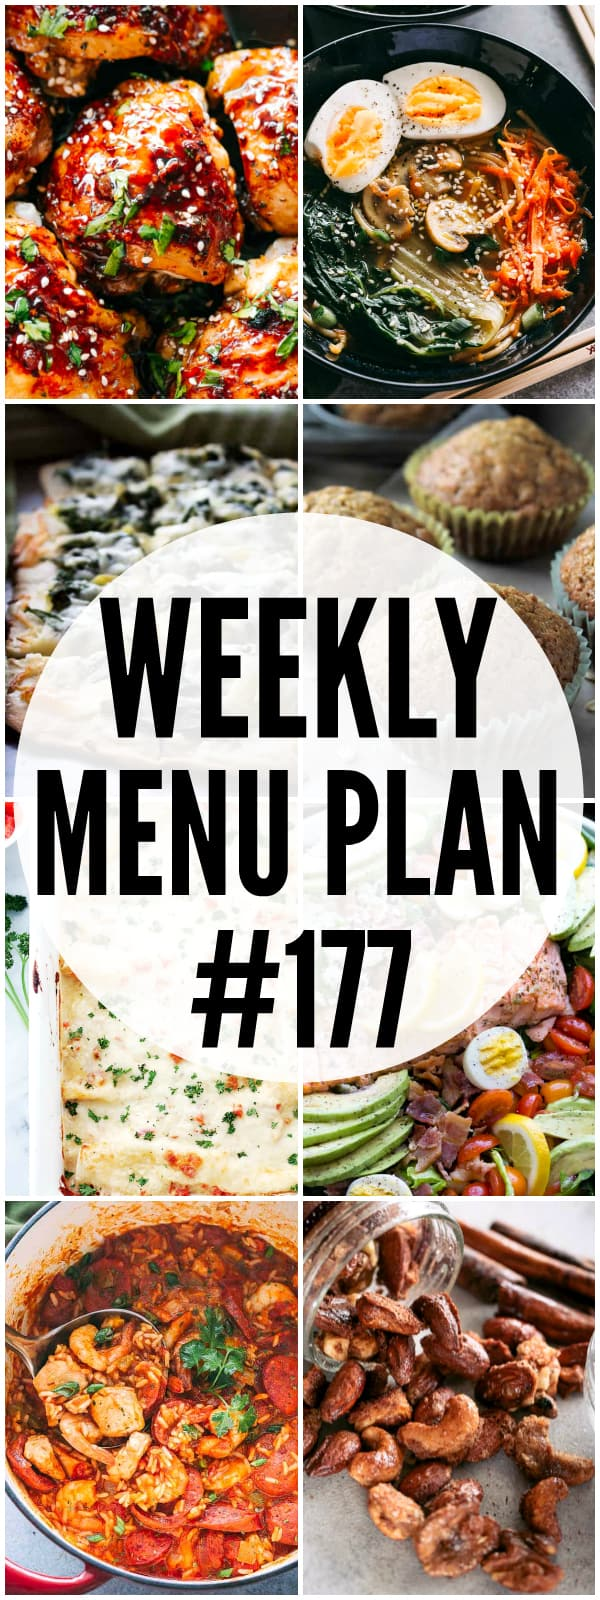 WEEKLY MENU PLAN 177